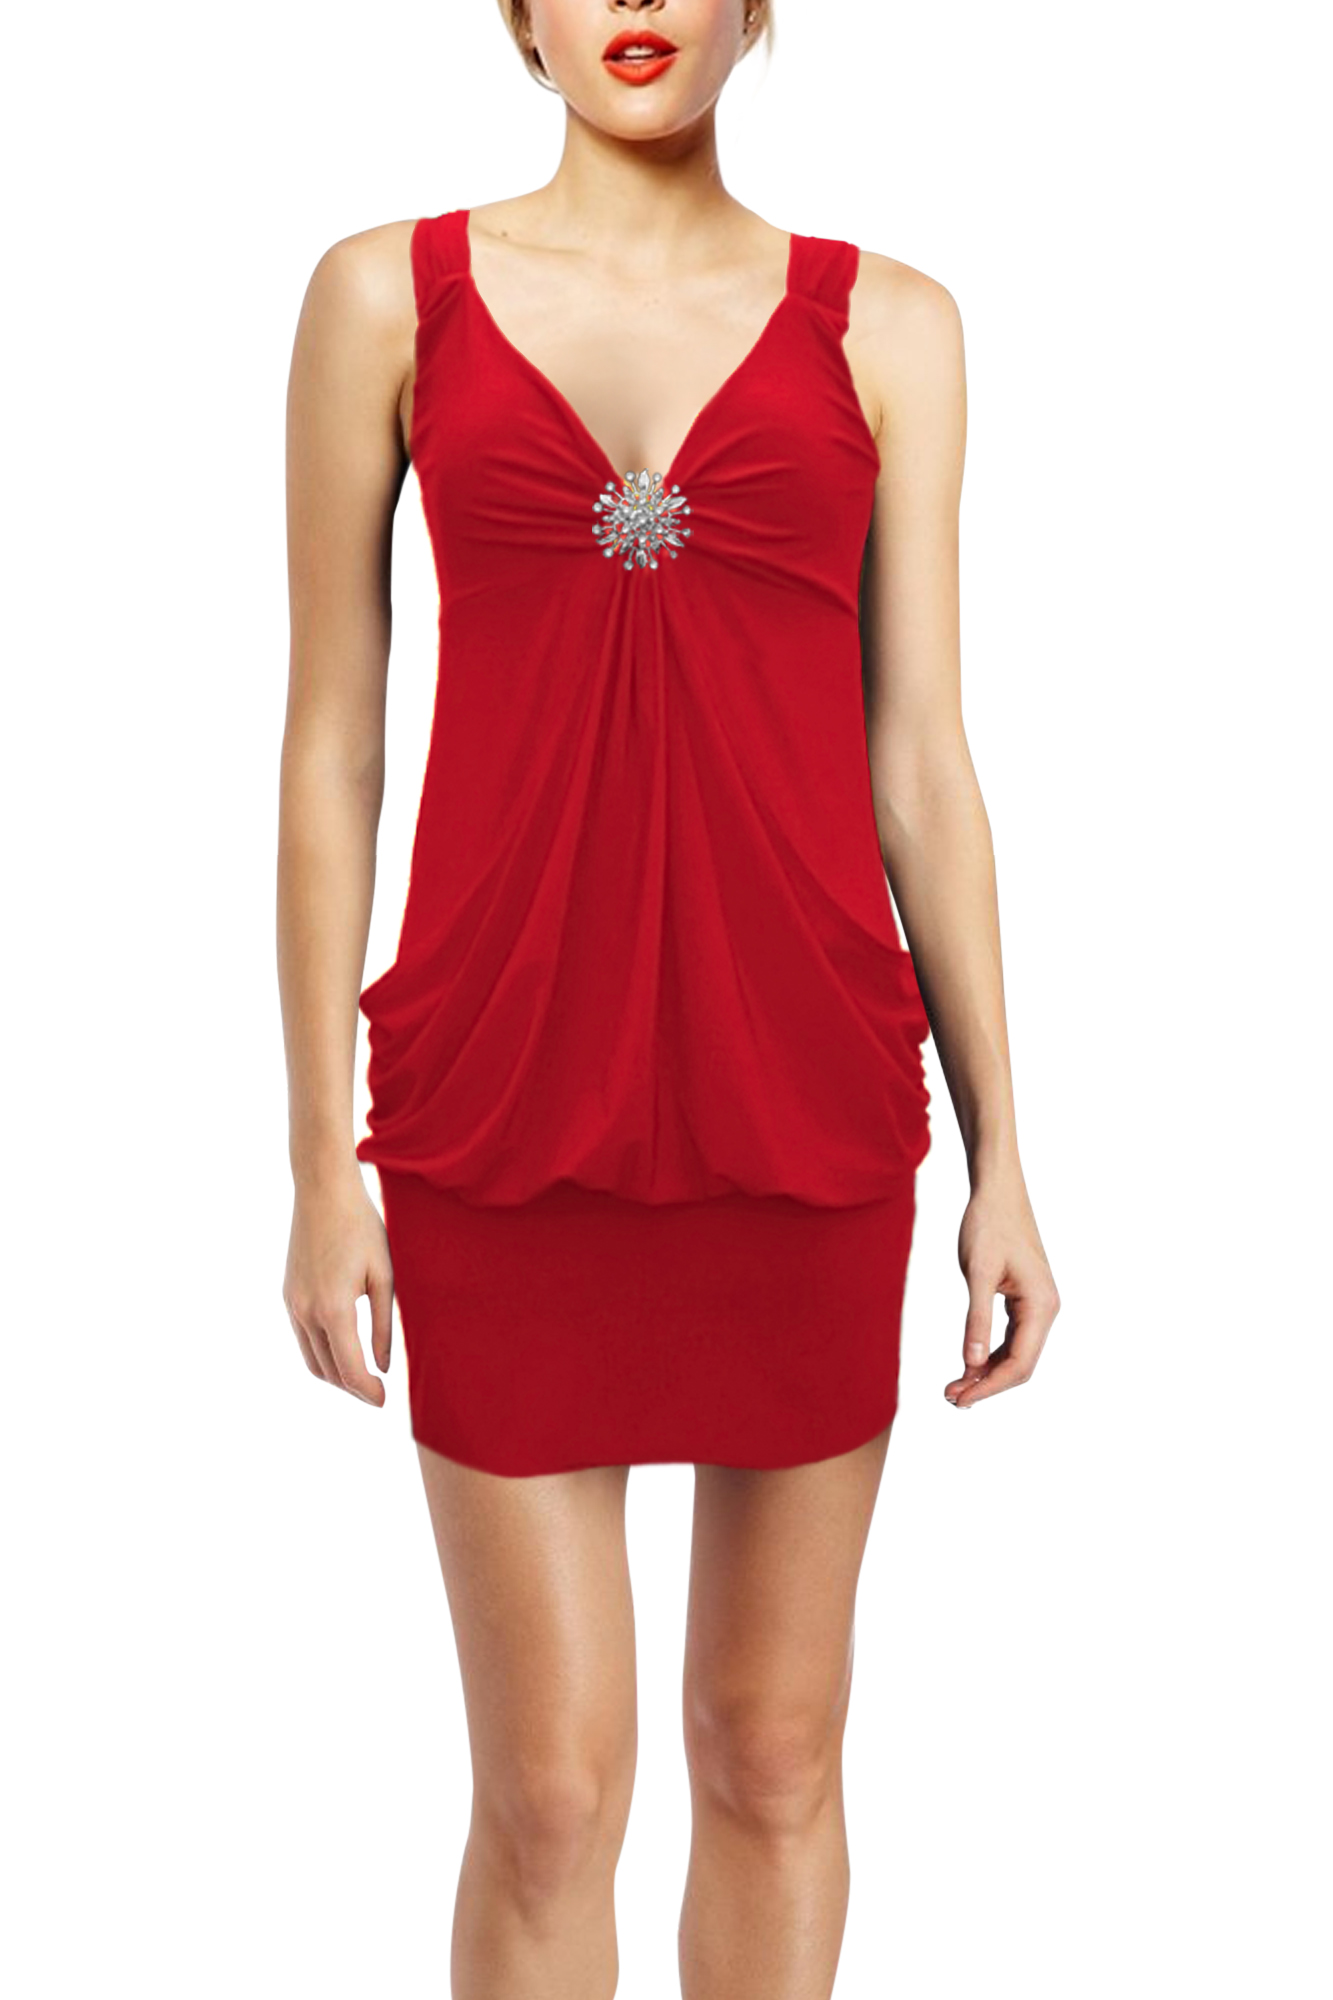 New Stunning Cocktail Party Clubwear Evening Dress Baggy ...